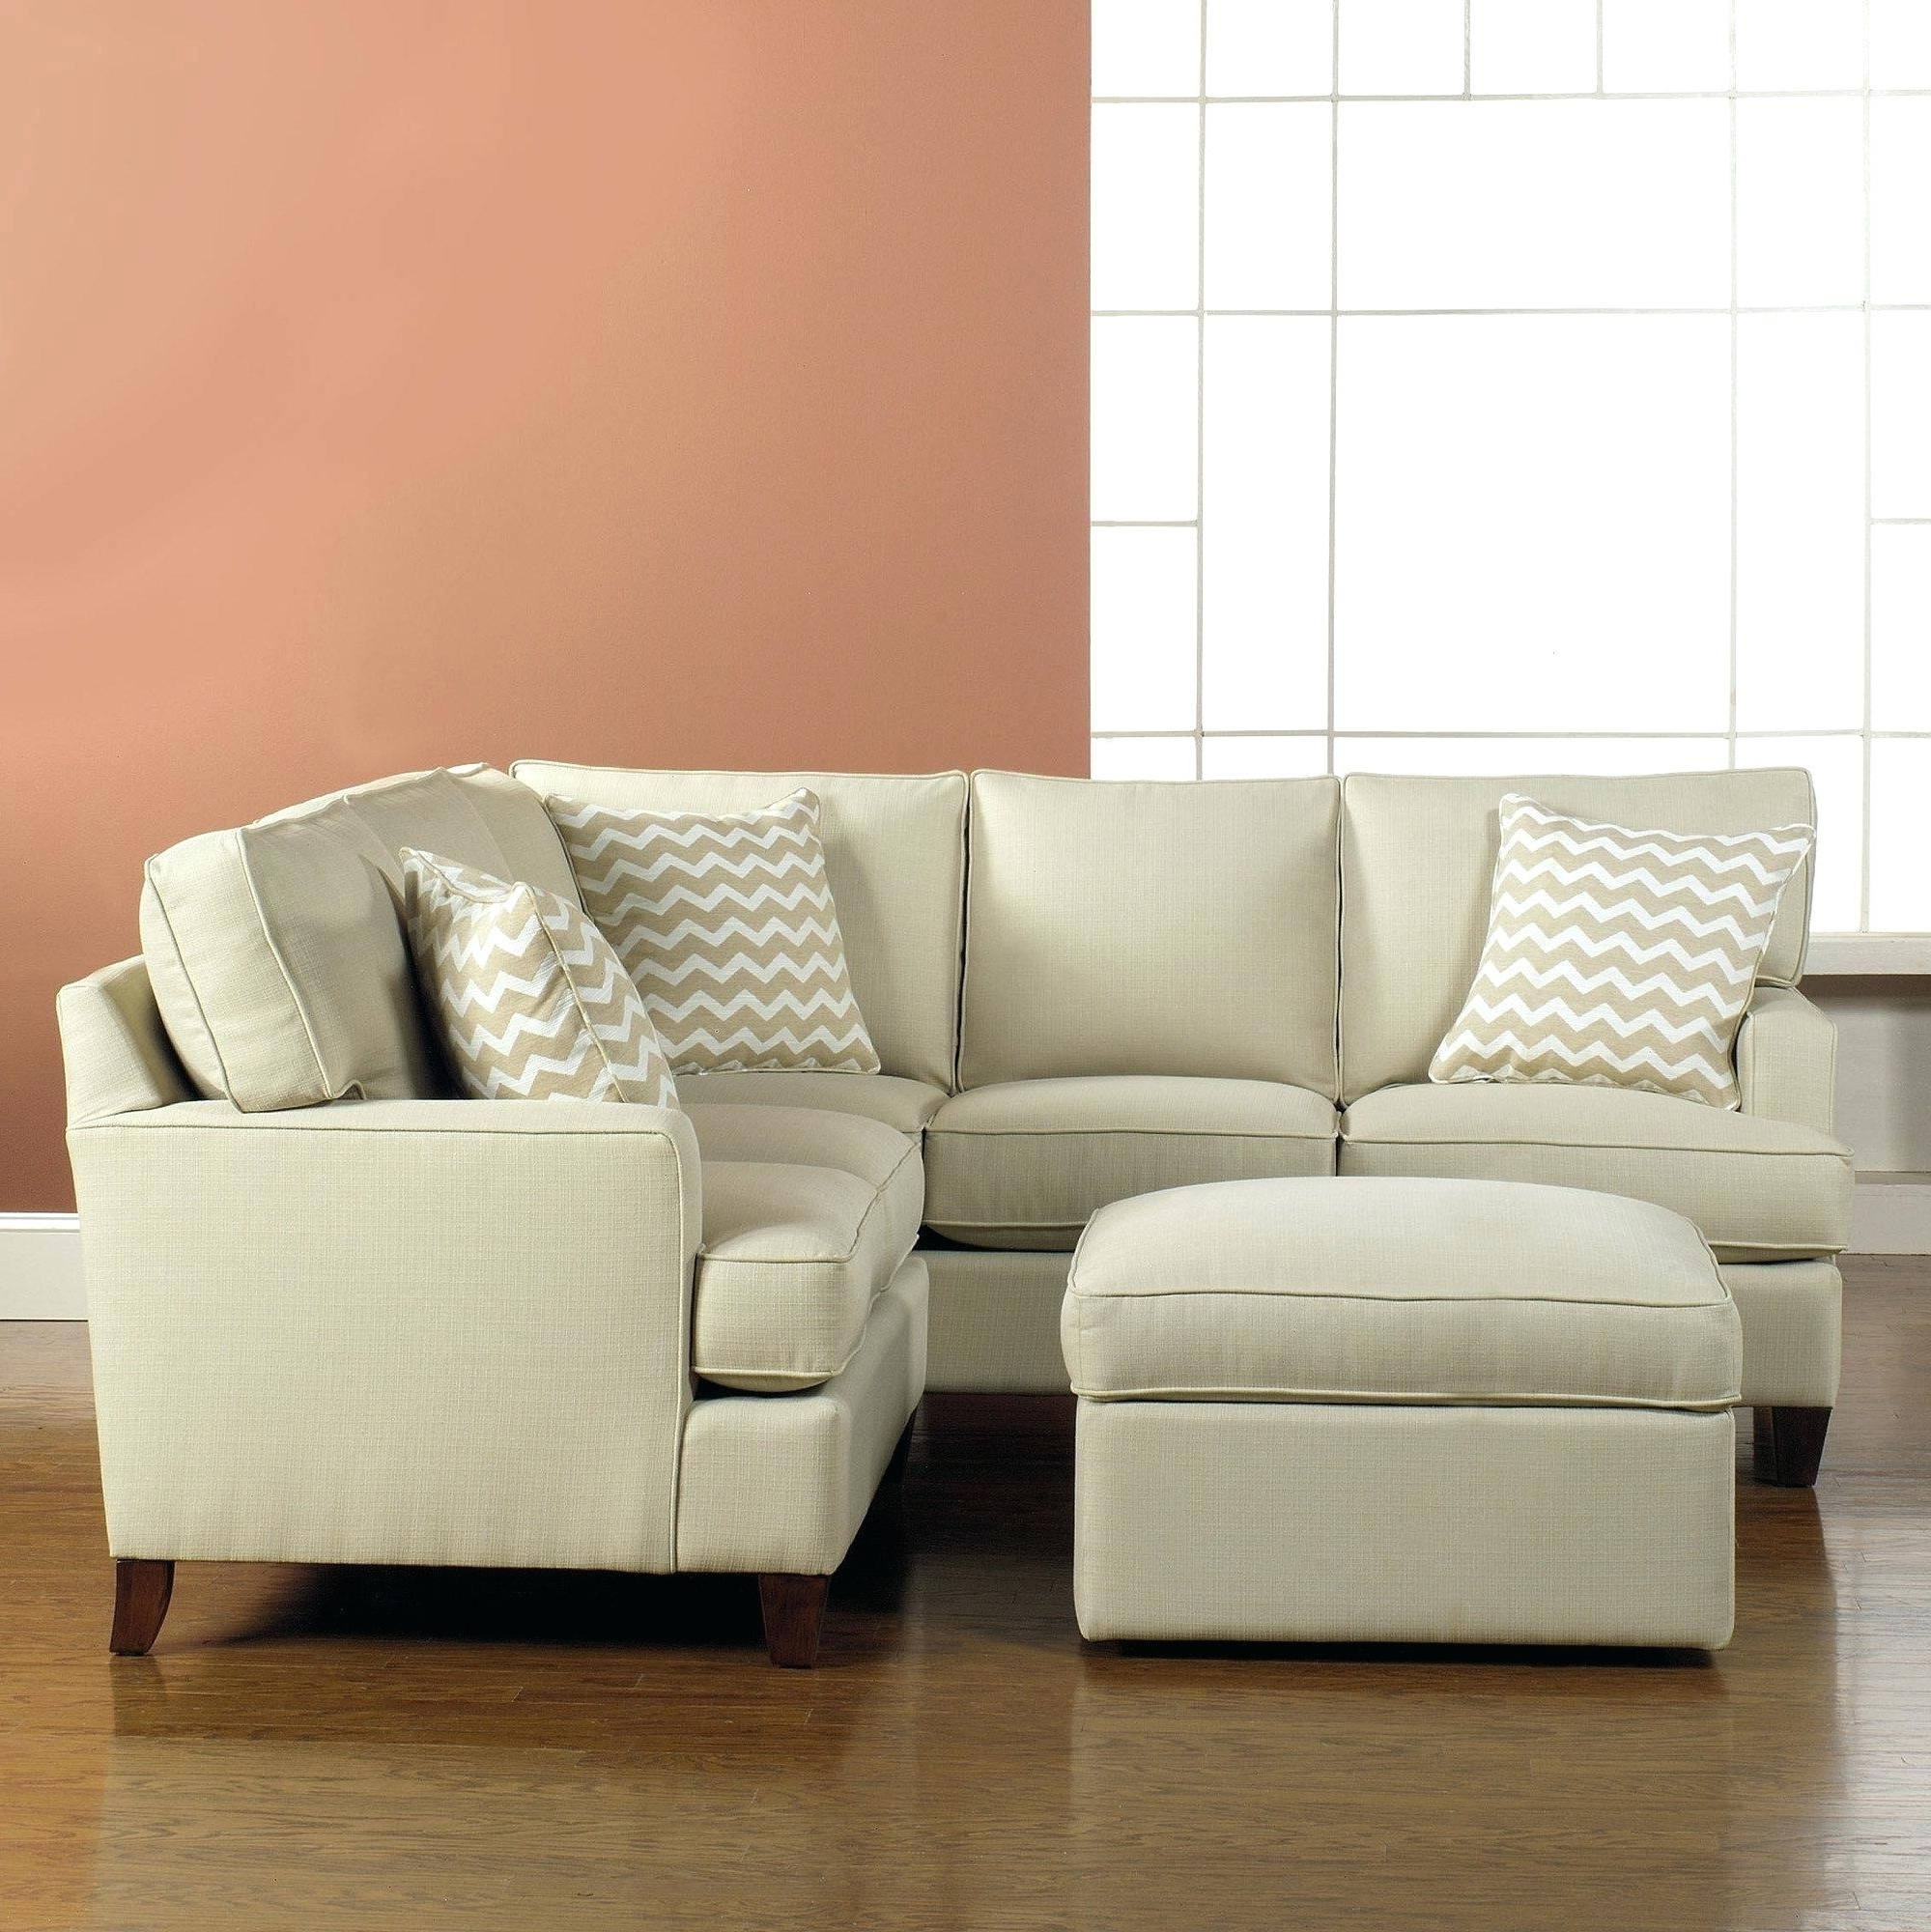 Image Gallery Of Canada Sectional Sofas For Small Spaces View 2 Of 20 Photos